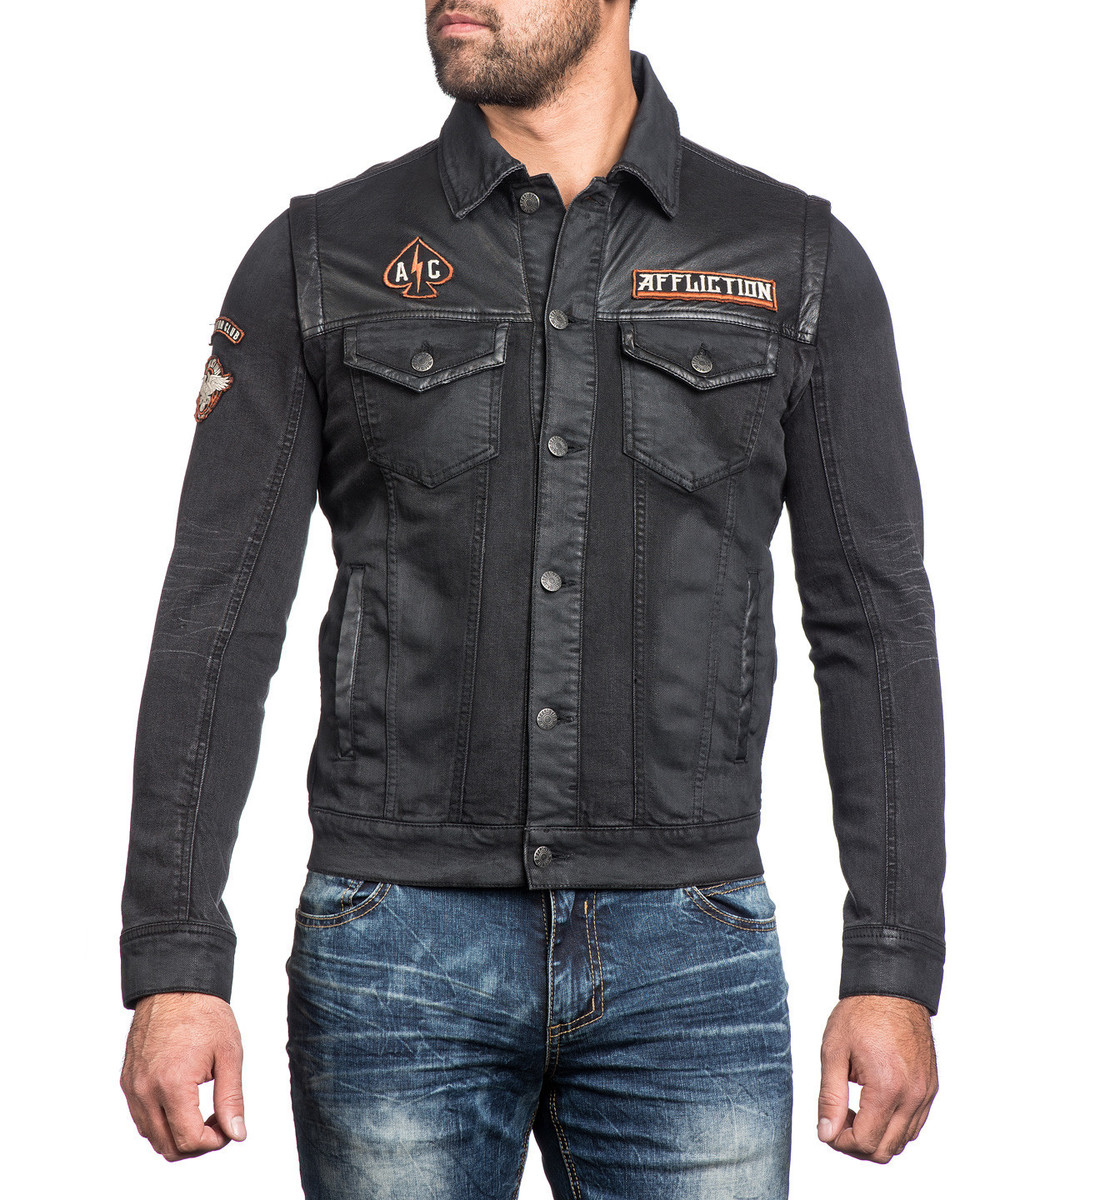 bunda pánská AFFLICTION - Bike Cutter - 110OW238-BK